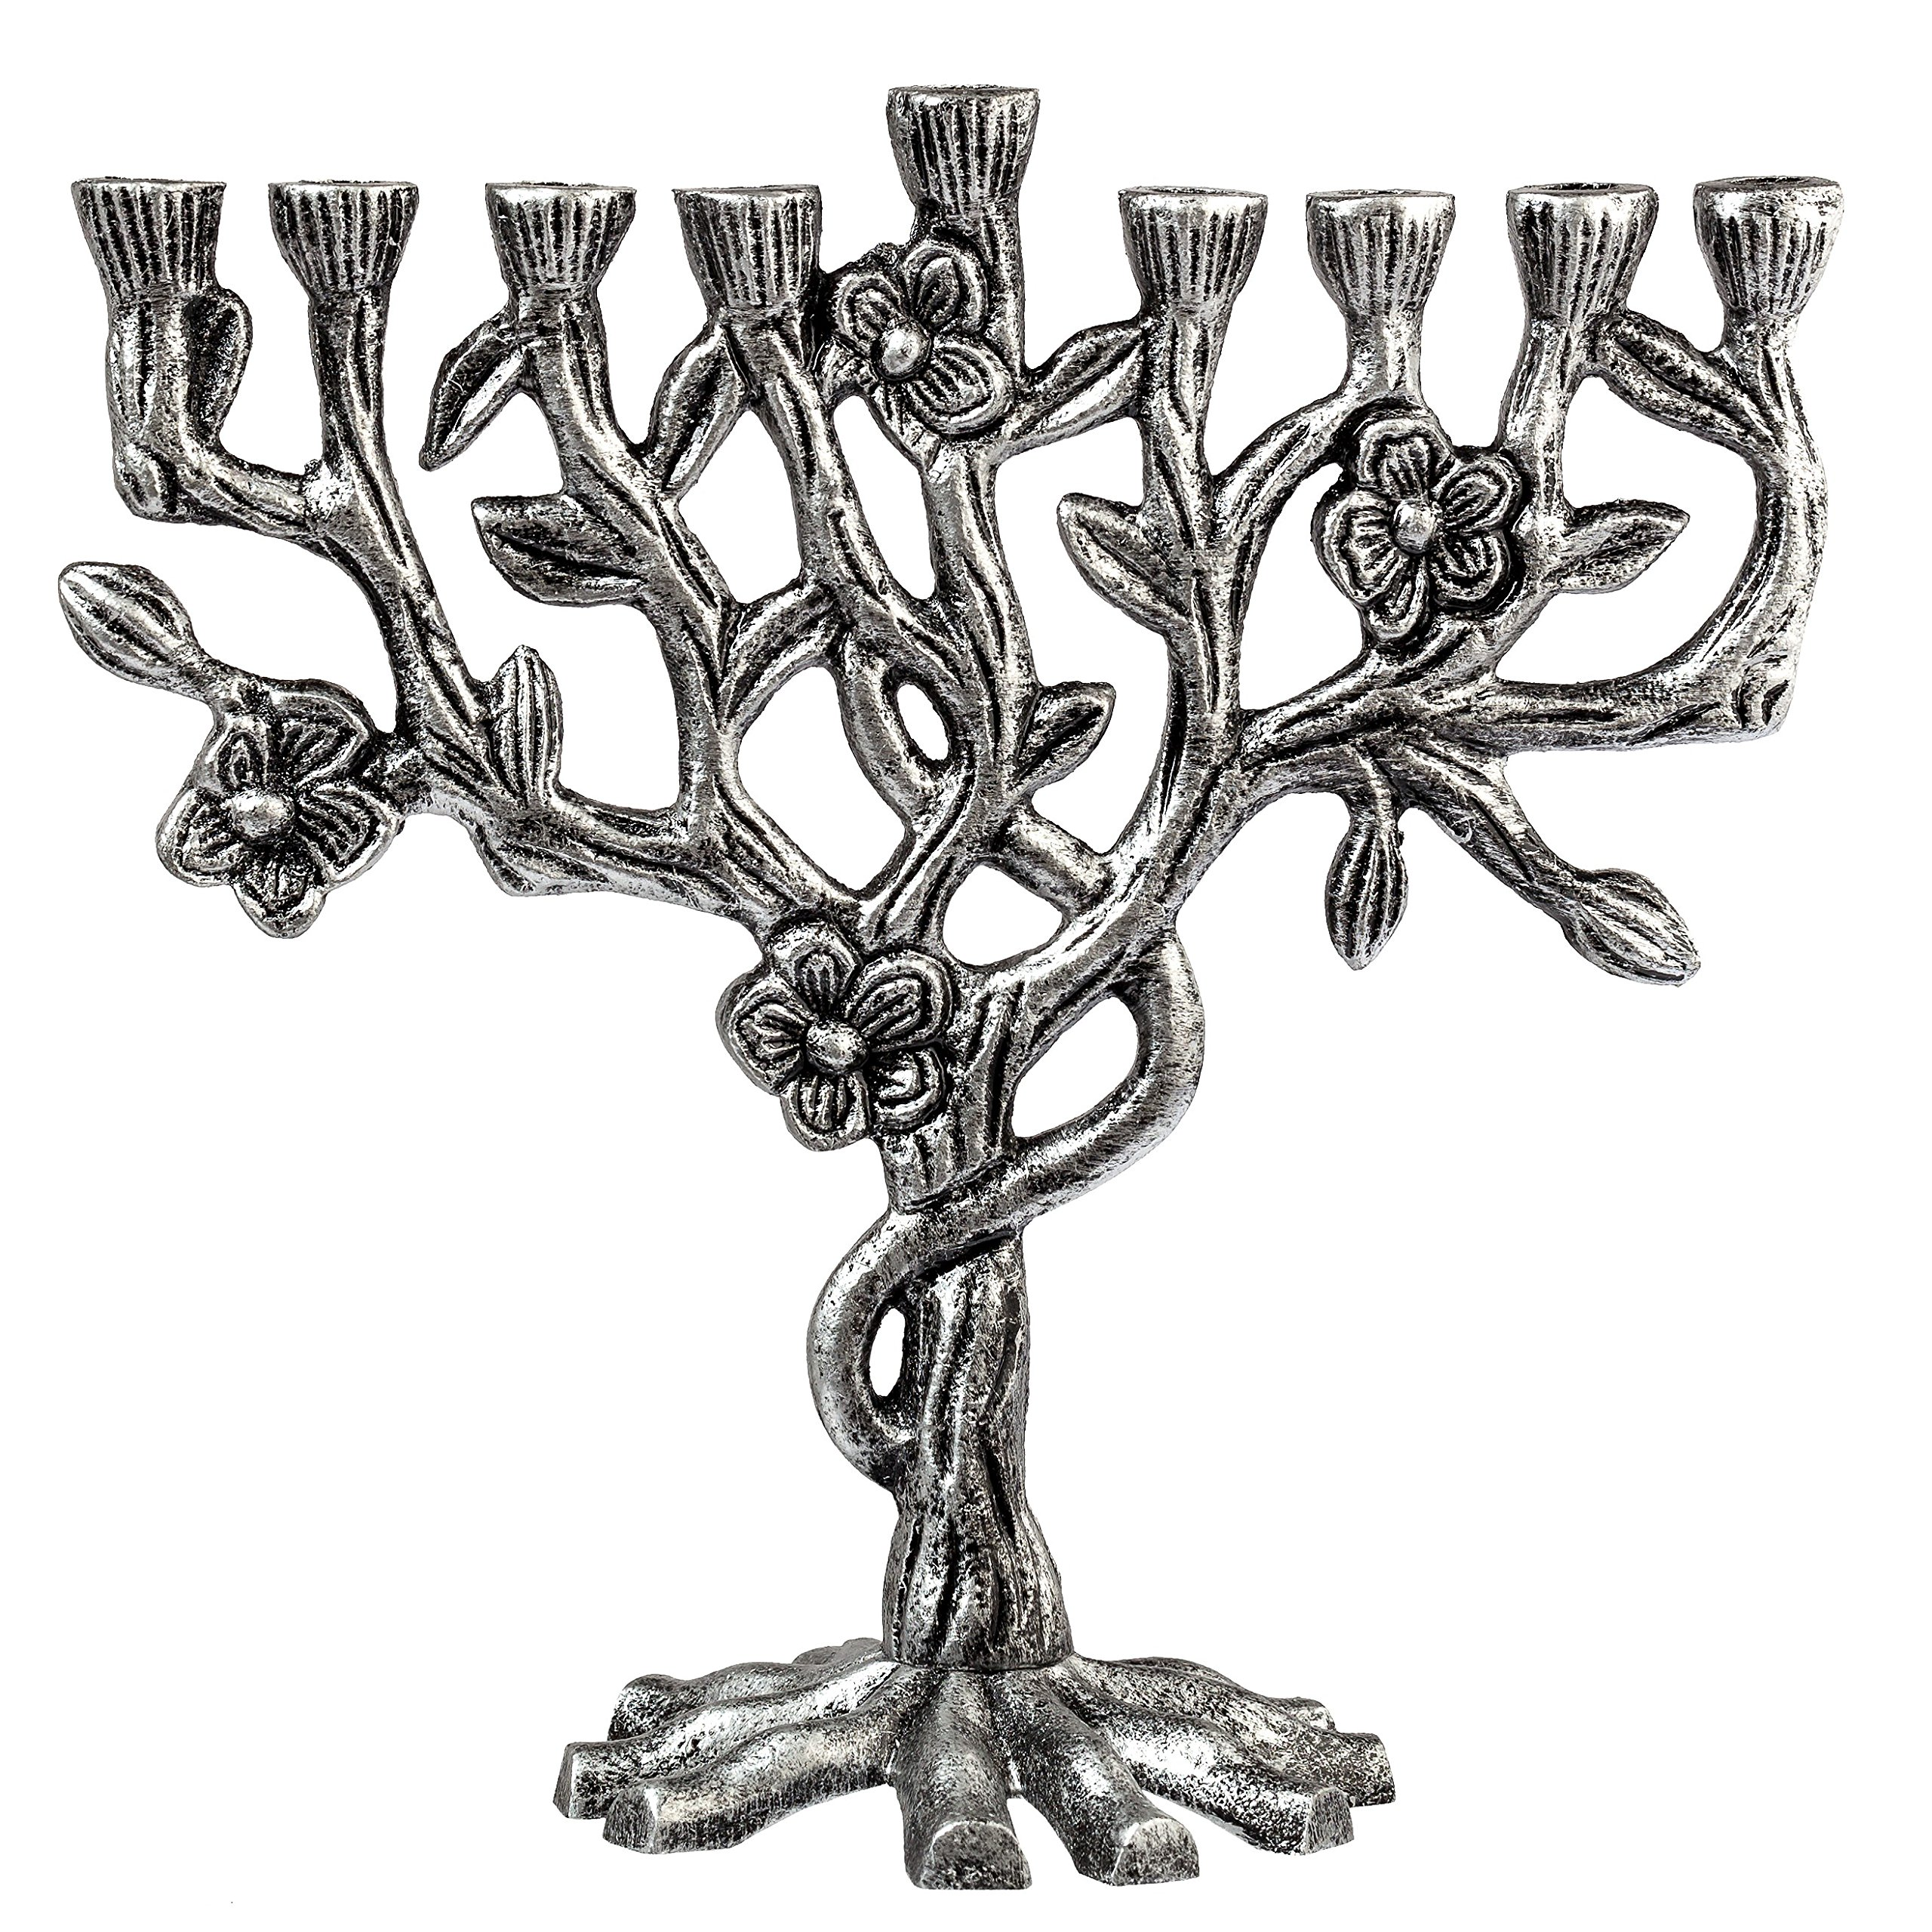 Artistic Aluminum Candle Menorah - Fits all Standard Chanukah Candles - Tree of Life Design - by Ner Mitzvah